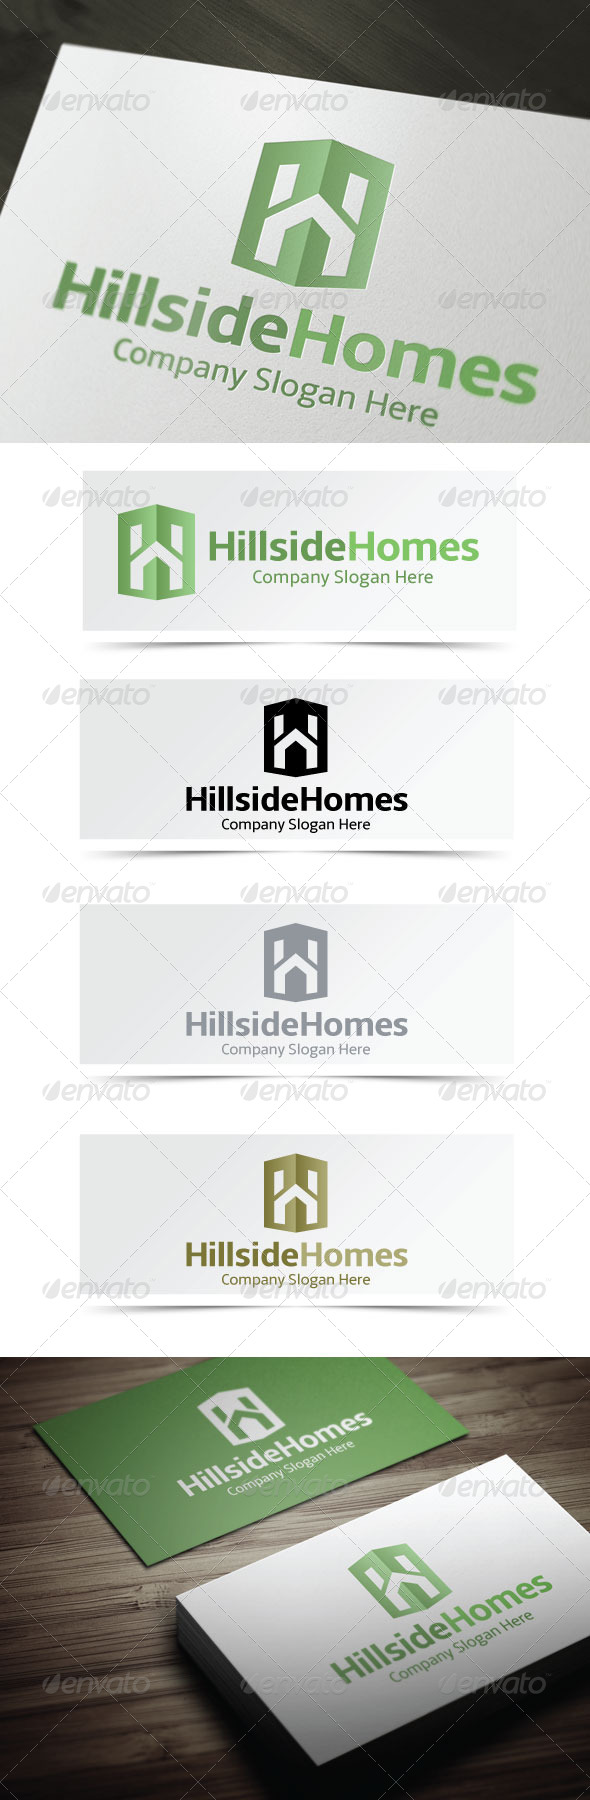 GraphicRiver Hillside Homes 4135164